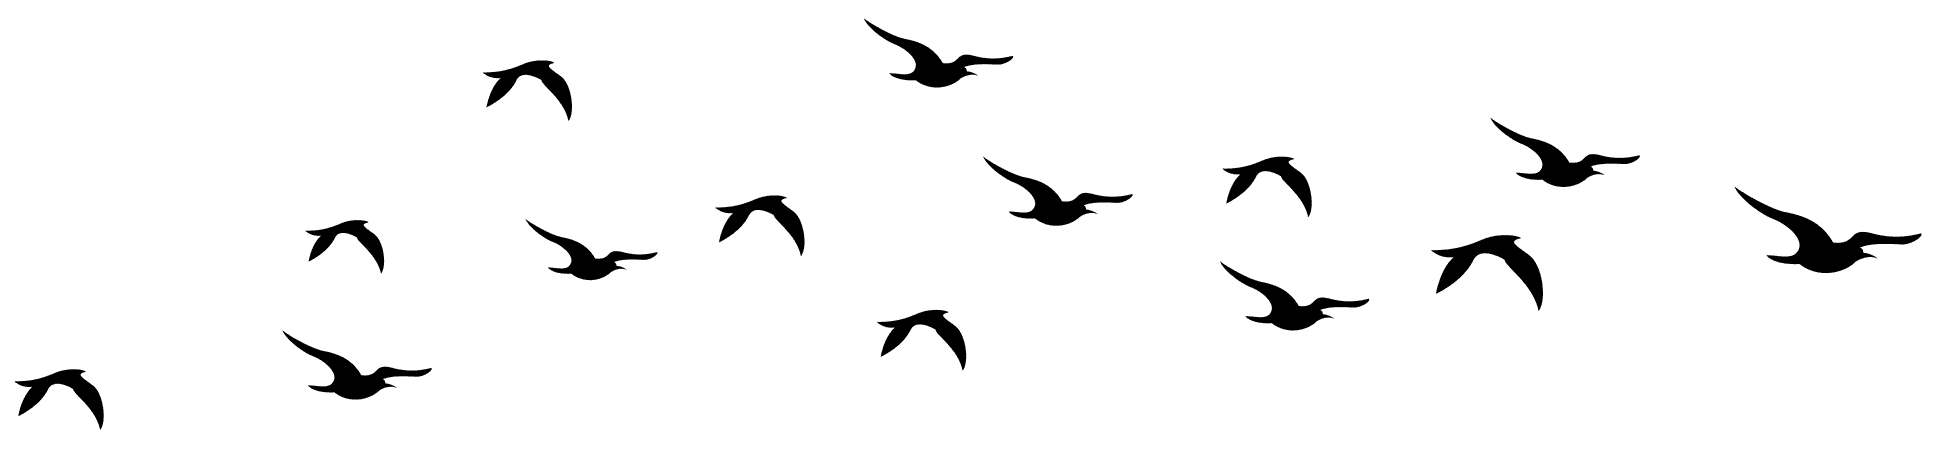 Flying Bird Png | Free download best Flying Bird Png on ClipArtMag.com